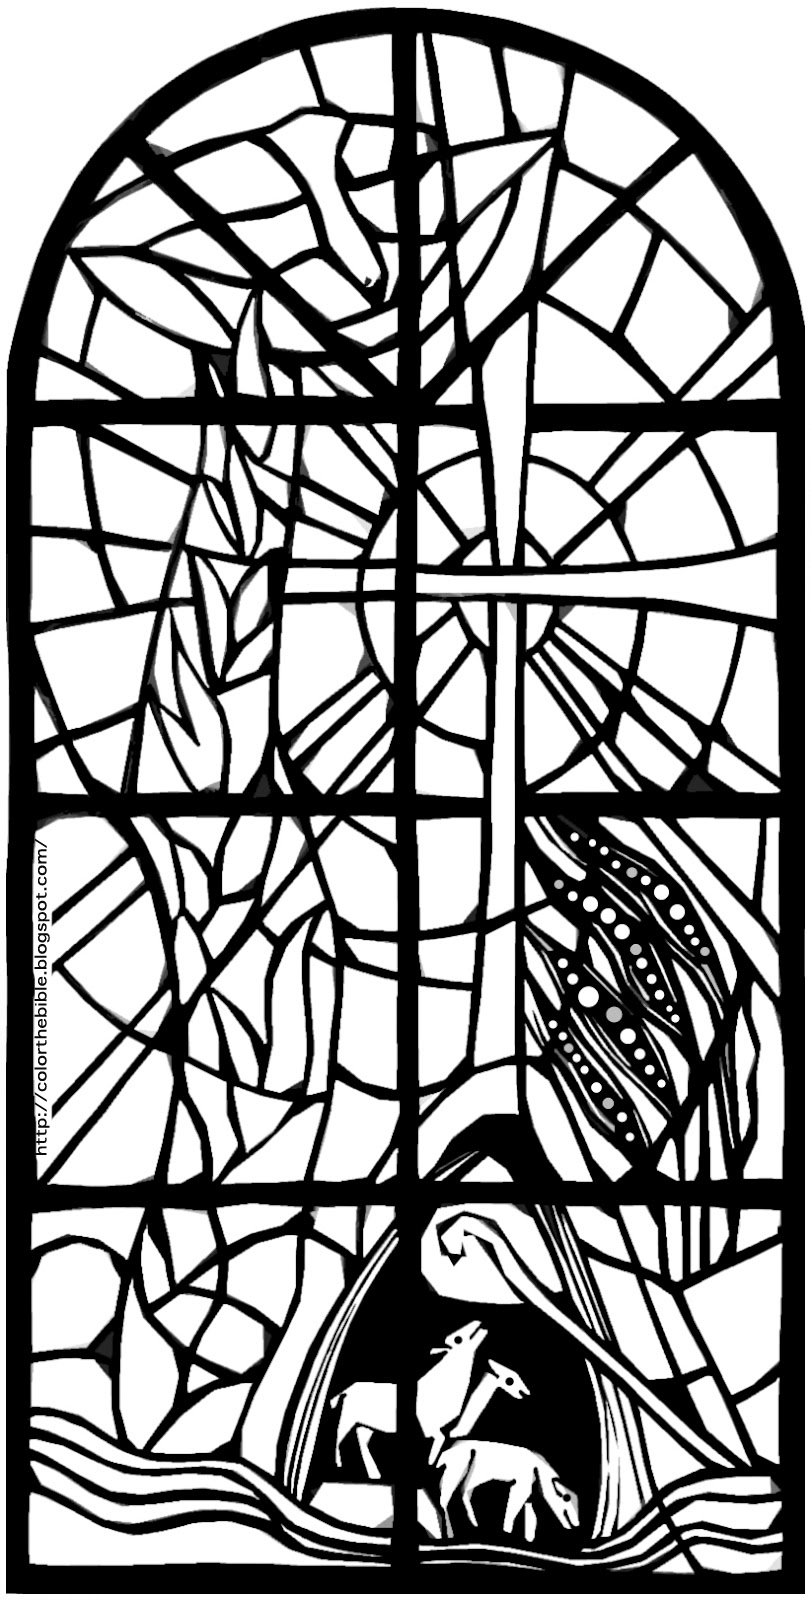 stained glass coloring page stained glass window worksheet educationcom page coloring glass stained